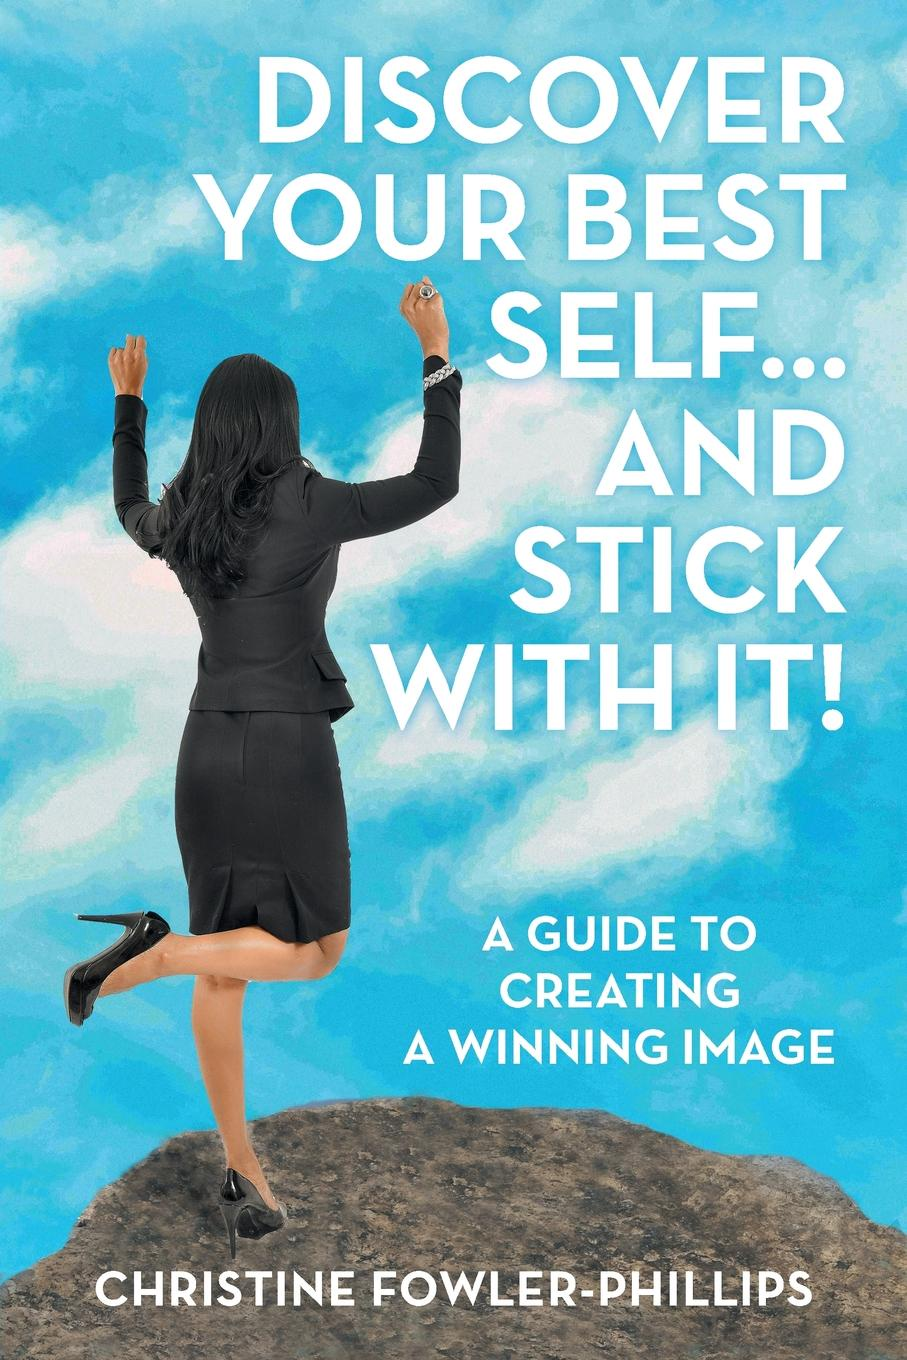 Christine Fowler-Phillips Discover Your Best Self ... and Stick with It.. A Guide to Creating a Winning Image between self and others